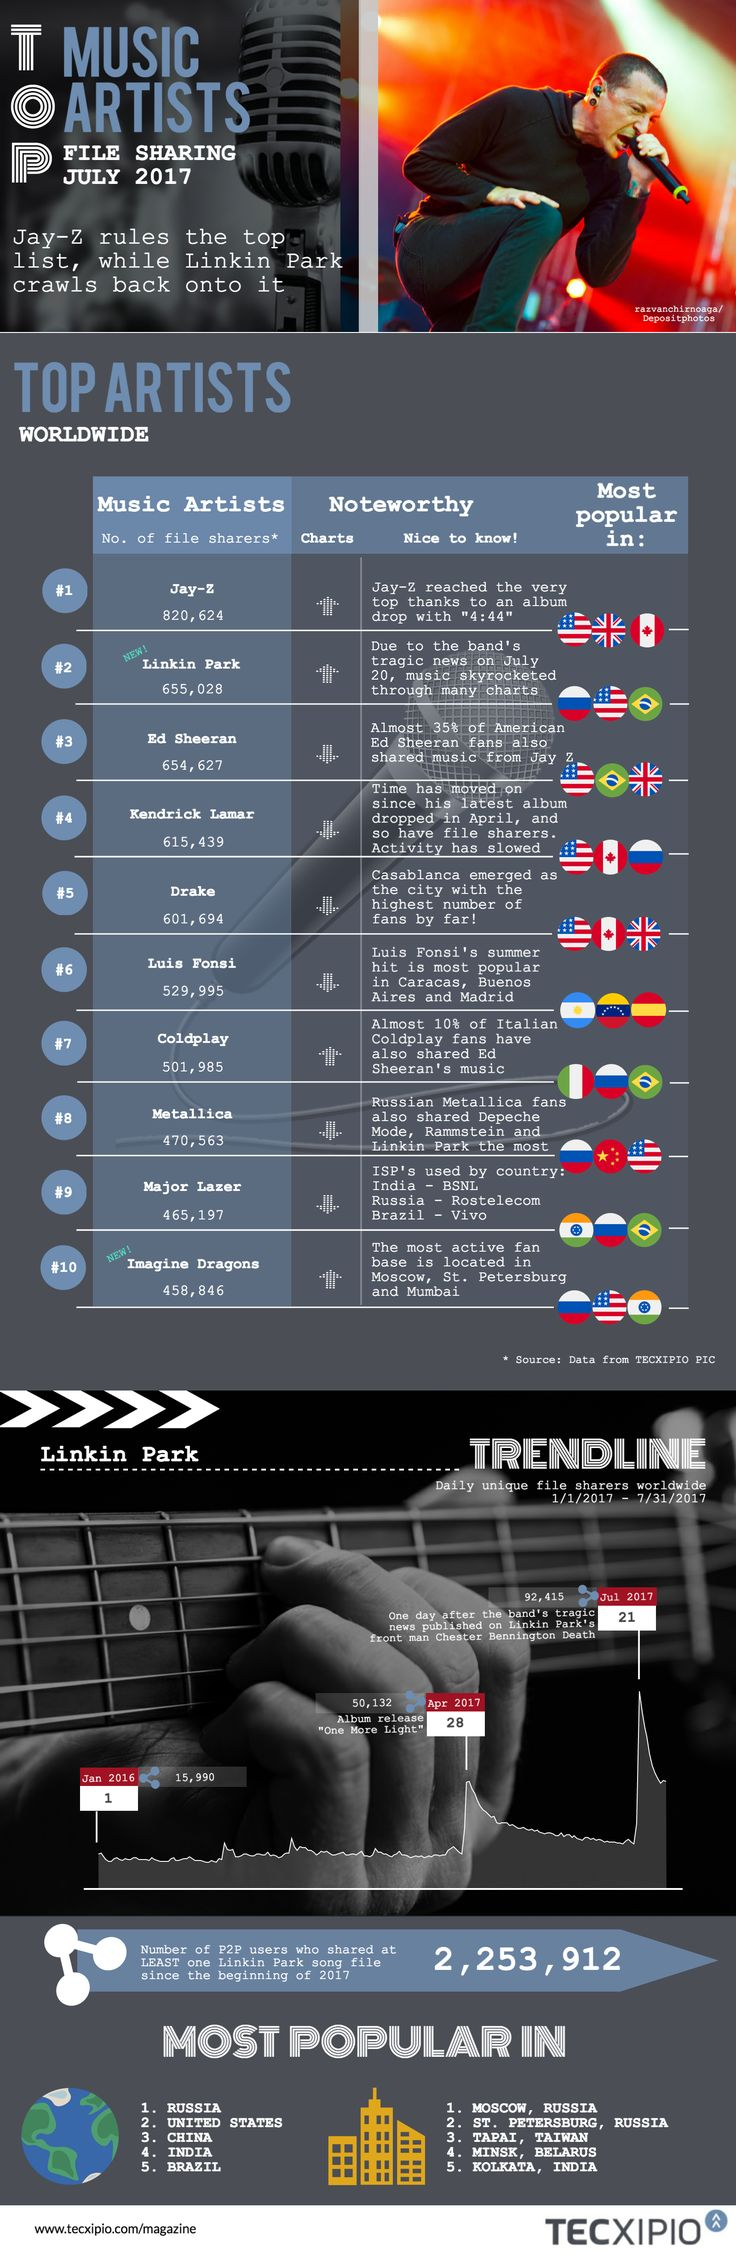 Infographic | Who is the most popular artist heating up the summer file sharing charts and winning over the most fans in July? - Jay-Z soaked up a win on the charts, while other popular artists started to wilt, plus fans came together to lift Linkin Park back into top 5 after lead singer Chester Bennington's death. Click here to read full article..